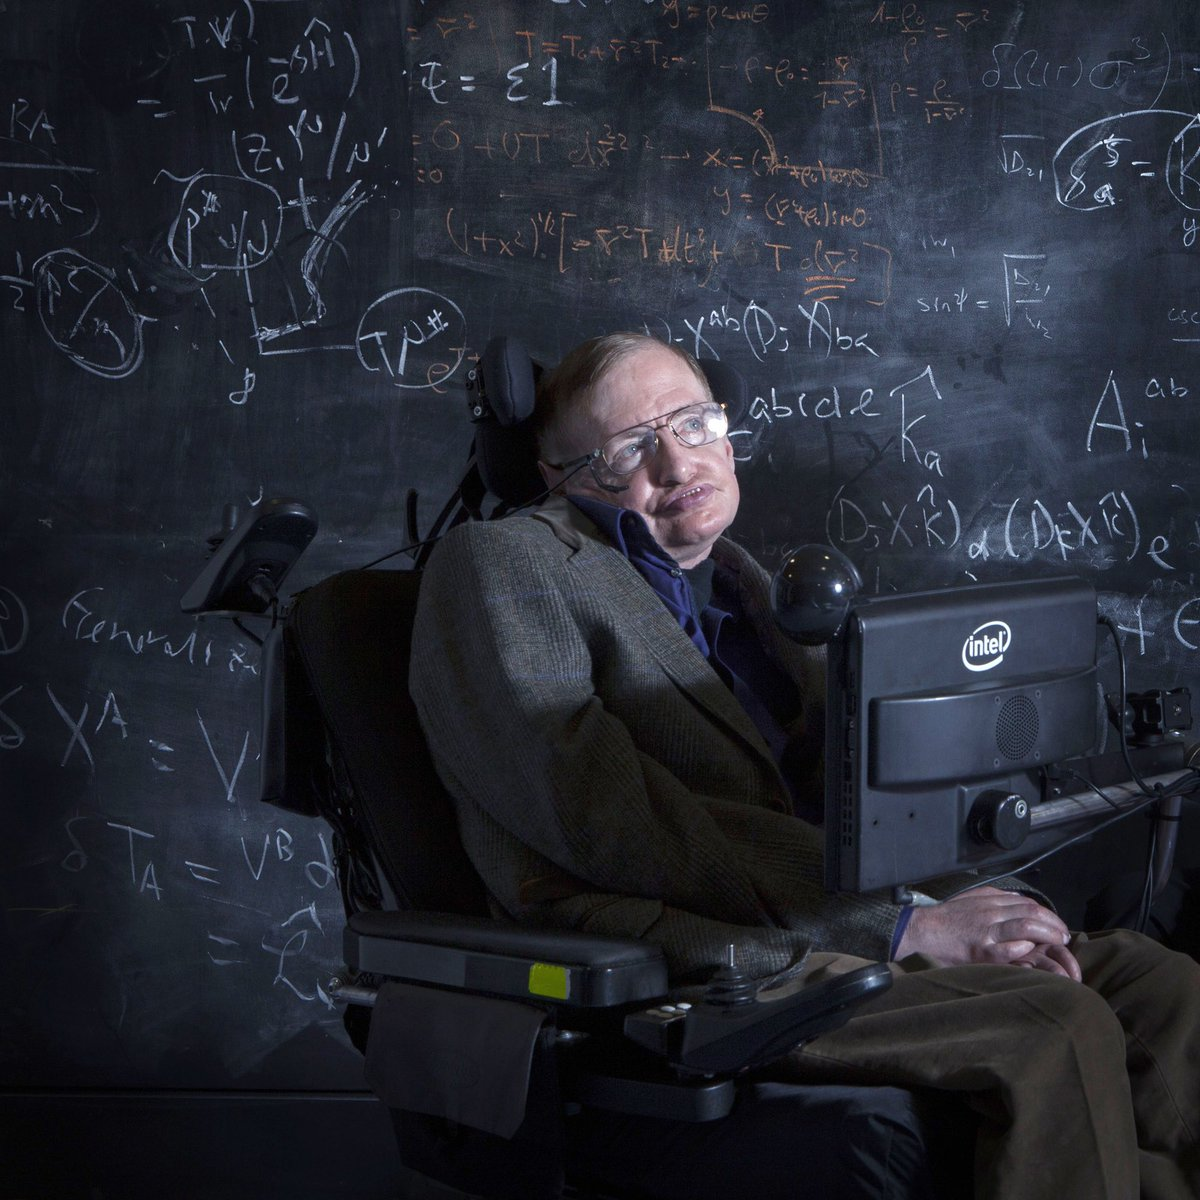 a biography and life work of stephen w hawking a theoretical physicist Suffering from amyotrophic lateral sclerosis, stephen hawking is an english theoretical physicist, cosmologist, author and director of research with the.